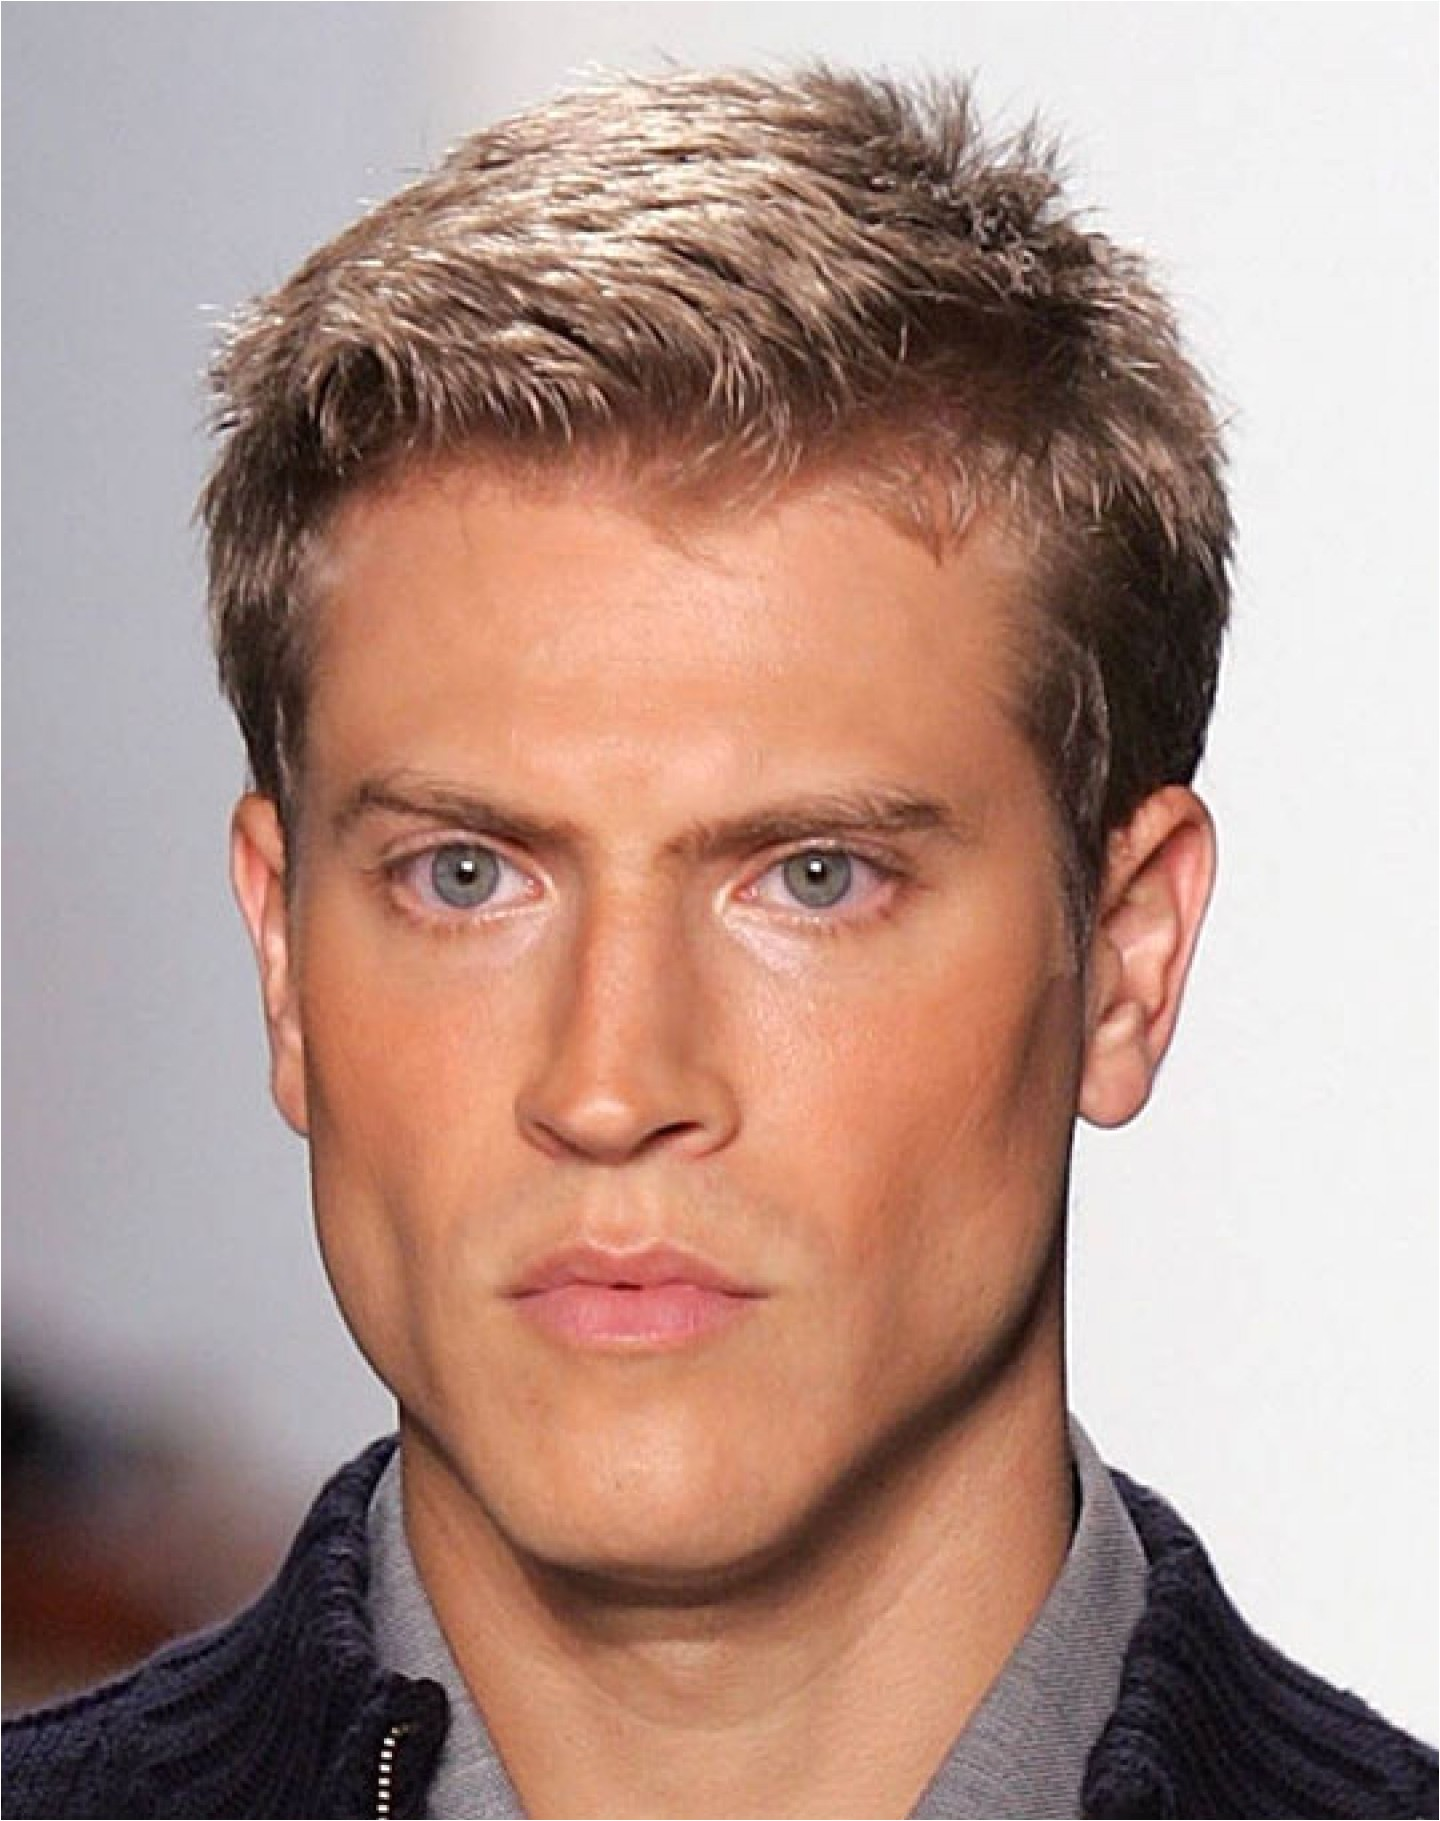 Hairstyles for Men Pic 5 Excellent Stylish Mens Haircuts